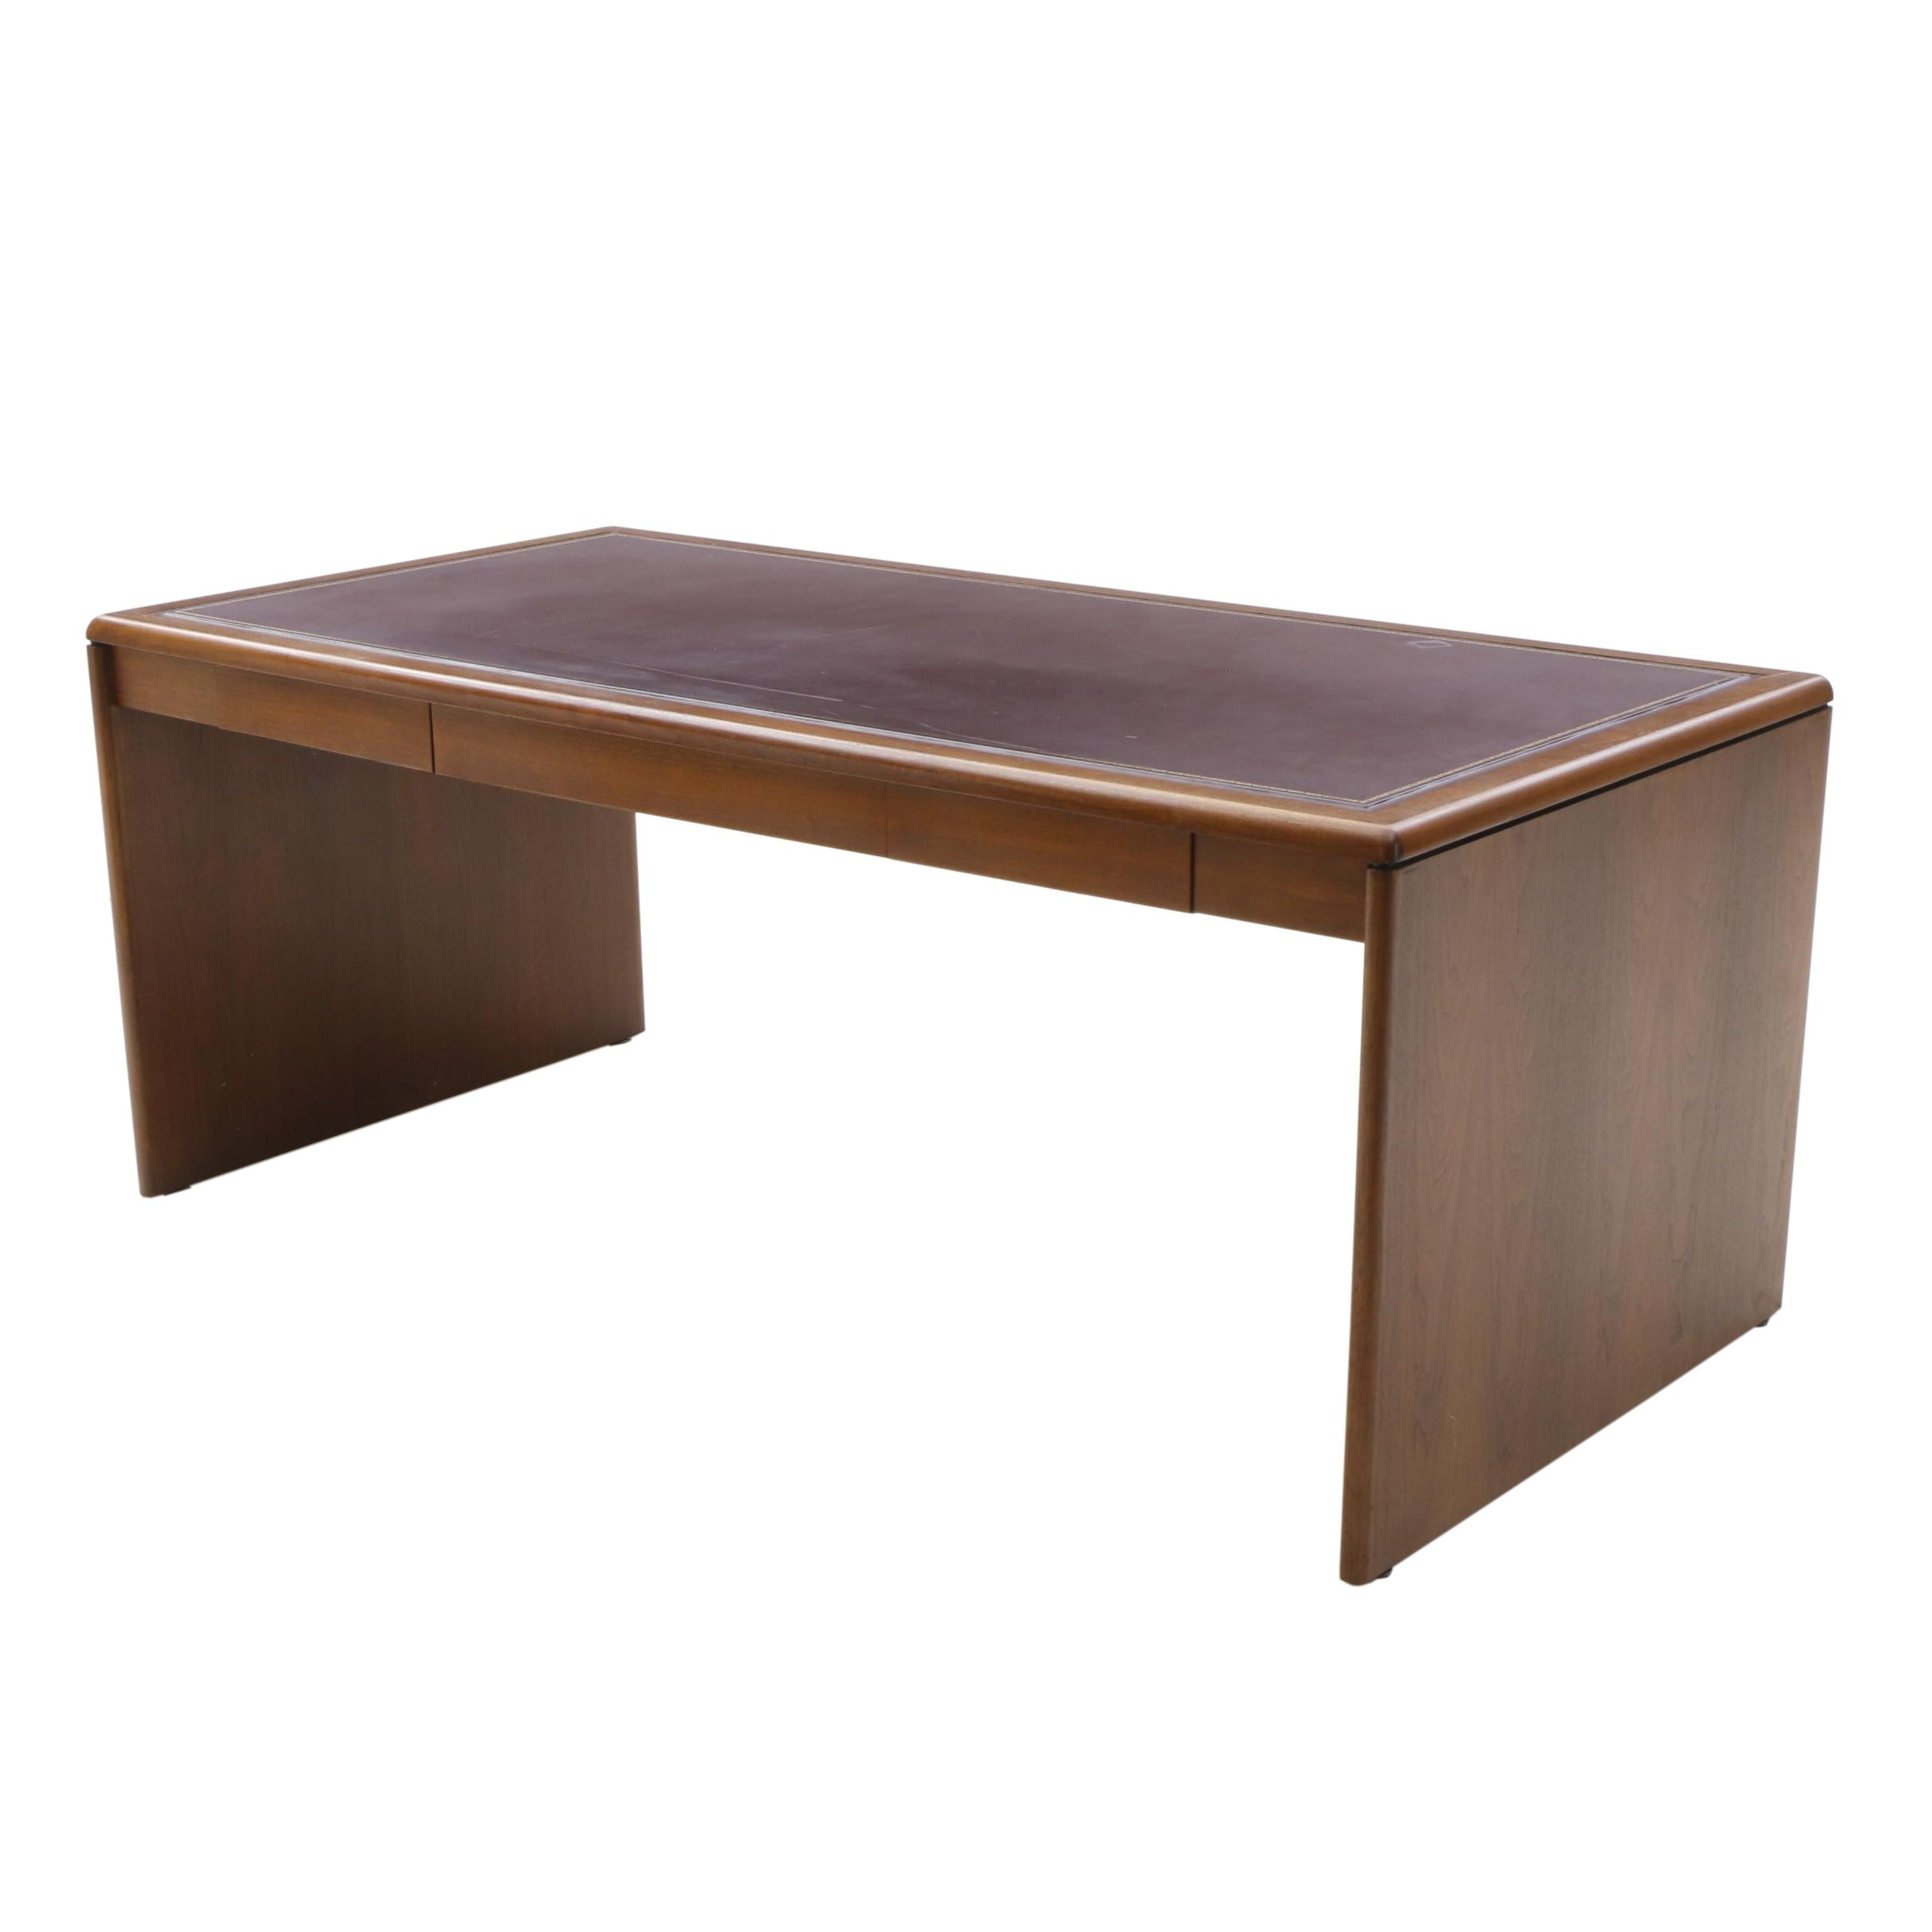 Leather Top Inset Executive Desk by Jofco Inc.